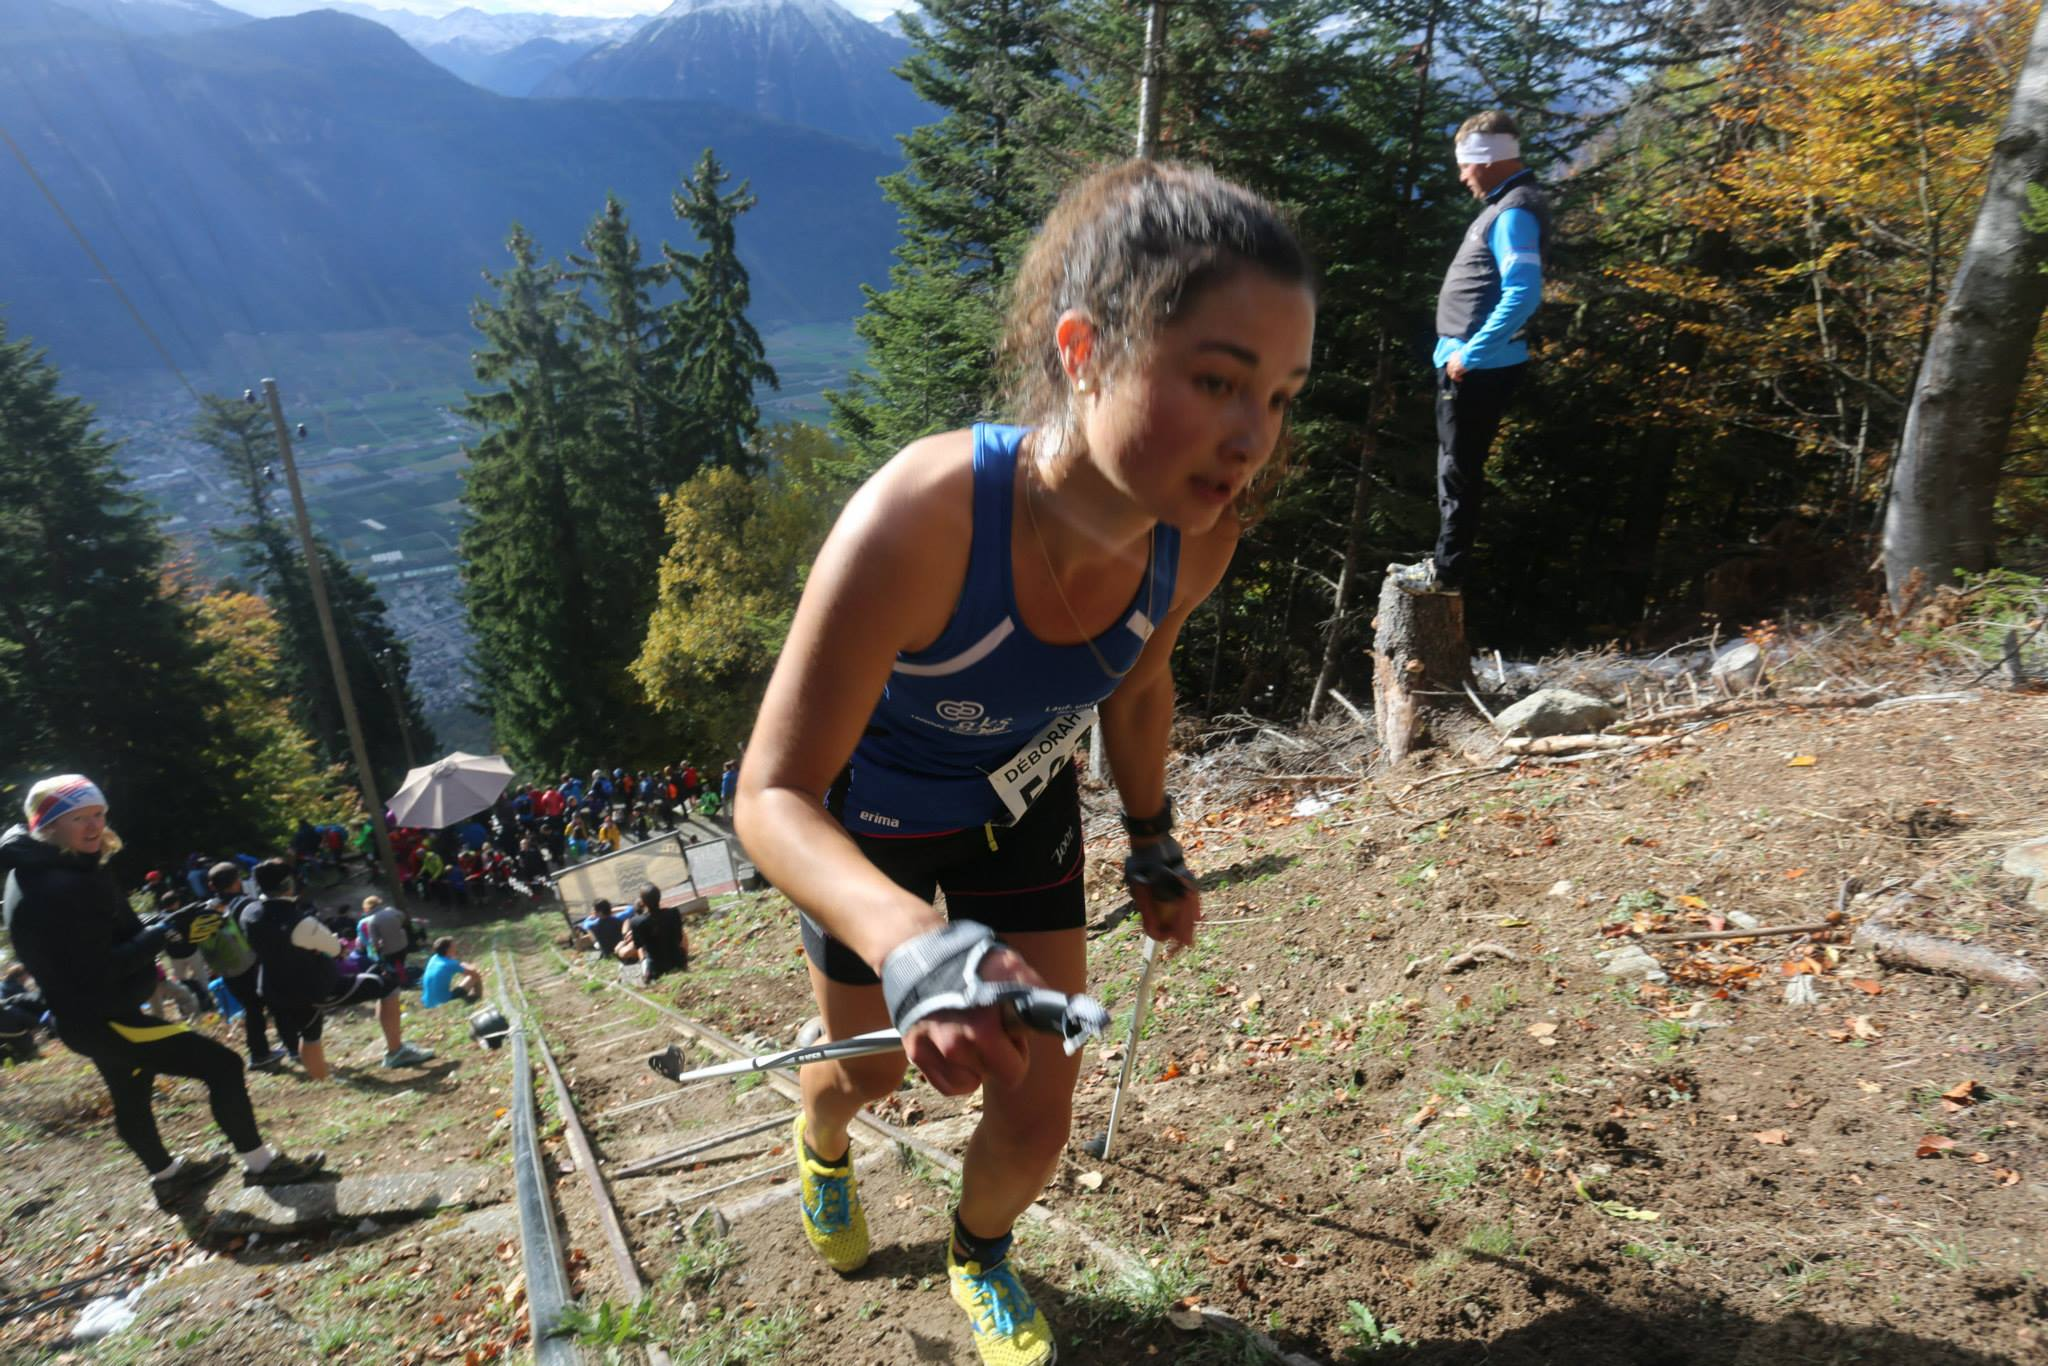 1932739 10152816630214176 8302615727031498448 o - PHOTOS DES ATHLETES FEMININES SUR LE KM VERTICAL DE FULLY (SUISSE) / 25-10-14